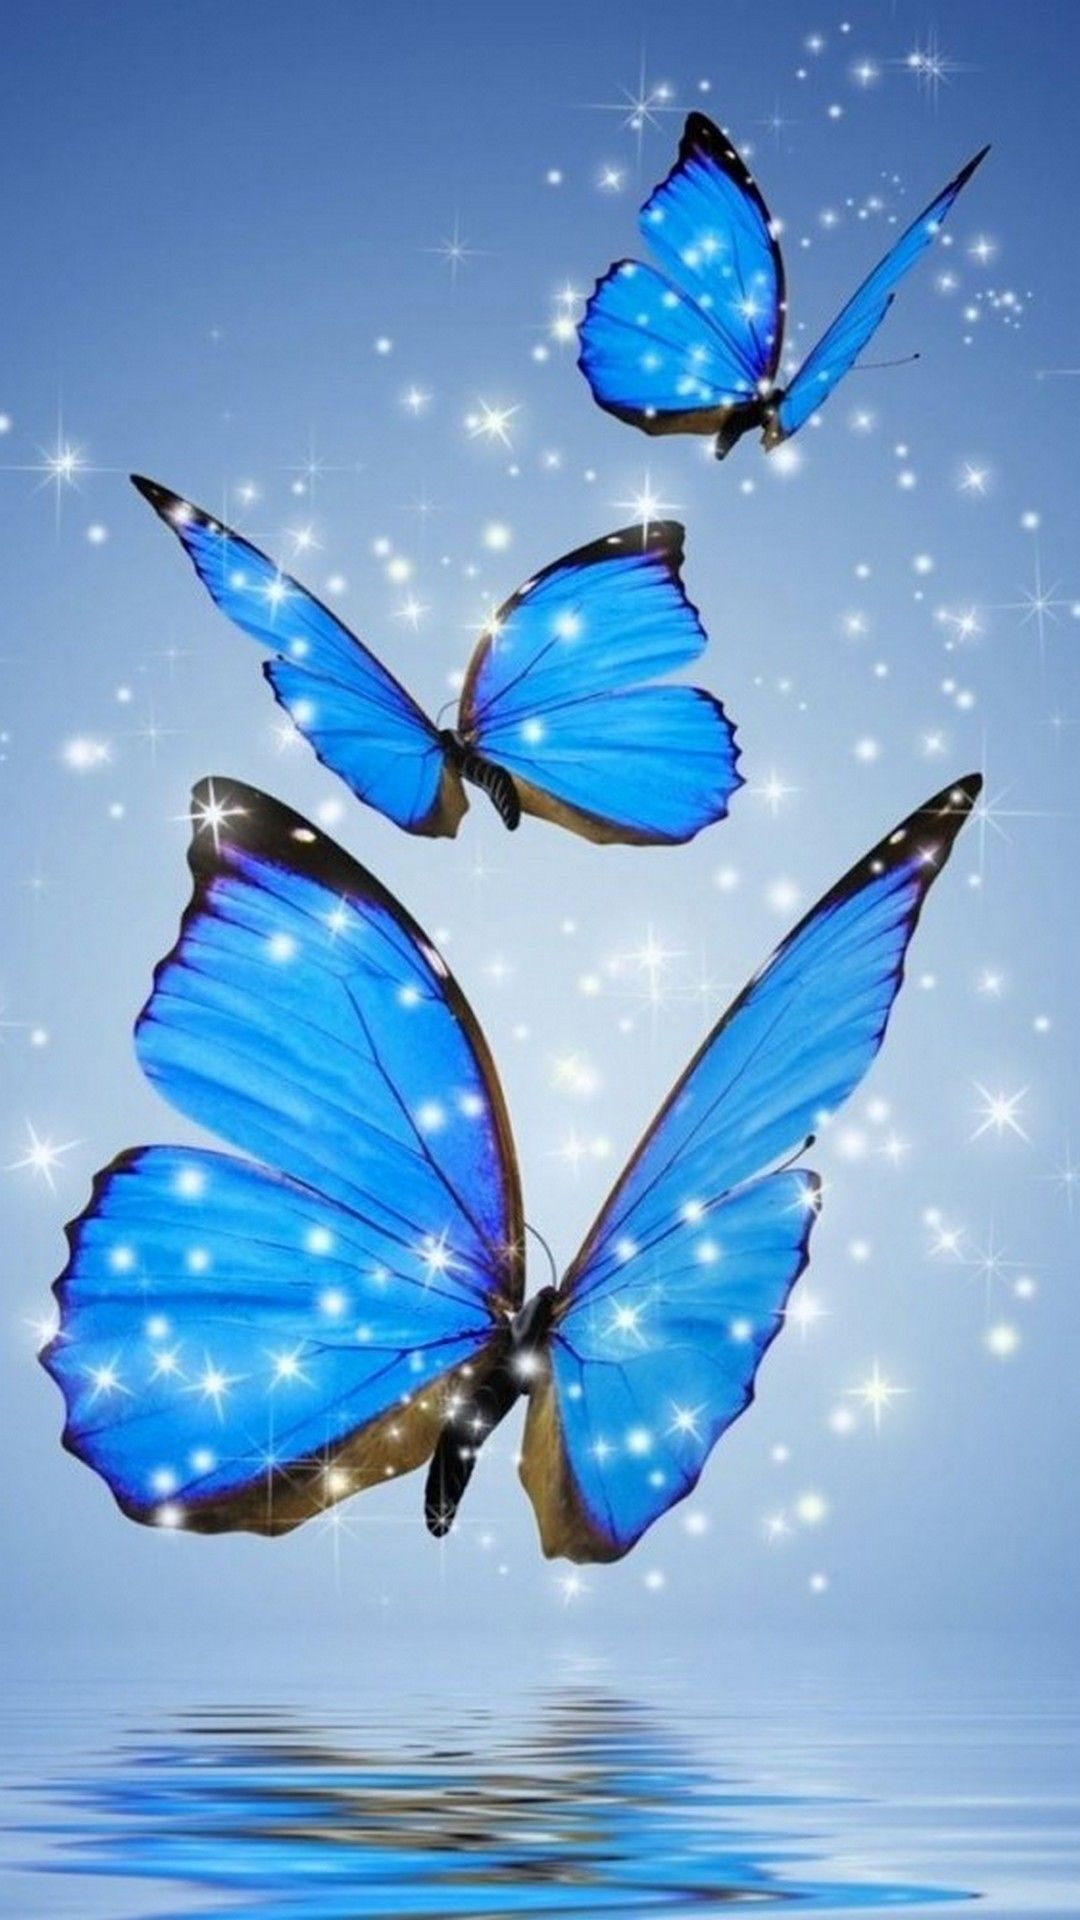 Blue Aesthetic Butterfly Wallpapers - Wallpaper Cave